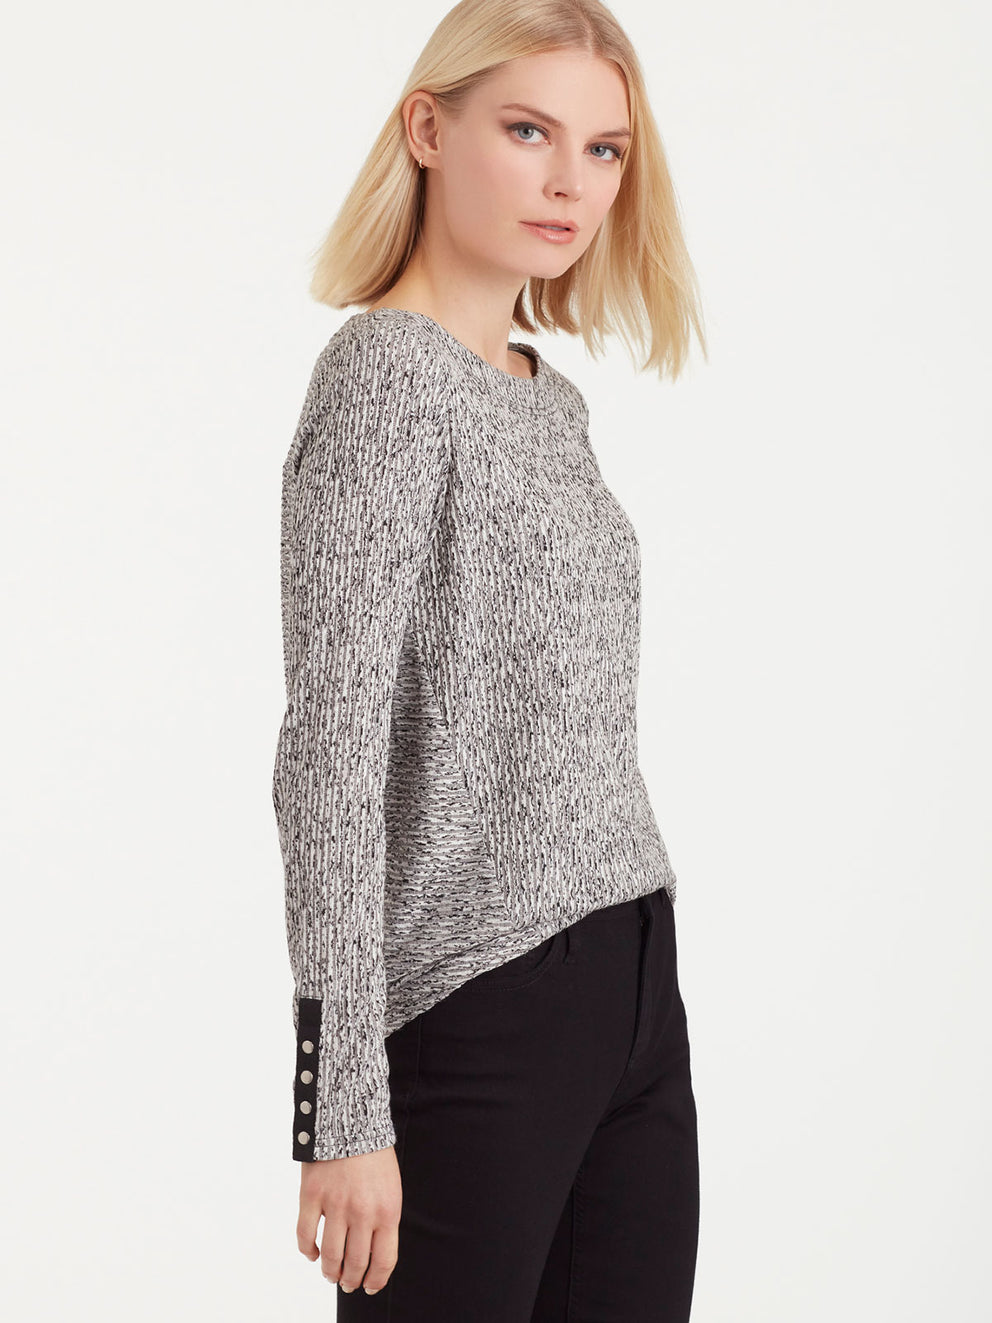 The Jones New York Snap Sleeve Boat Neck Top in color Pebble Glimmer - Image Position 2